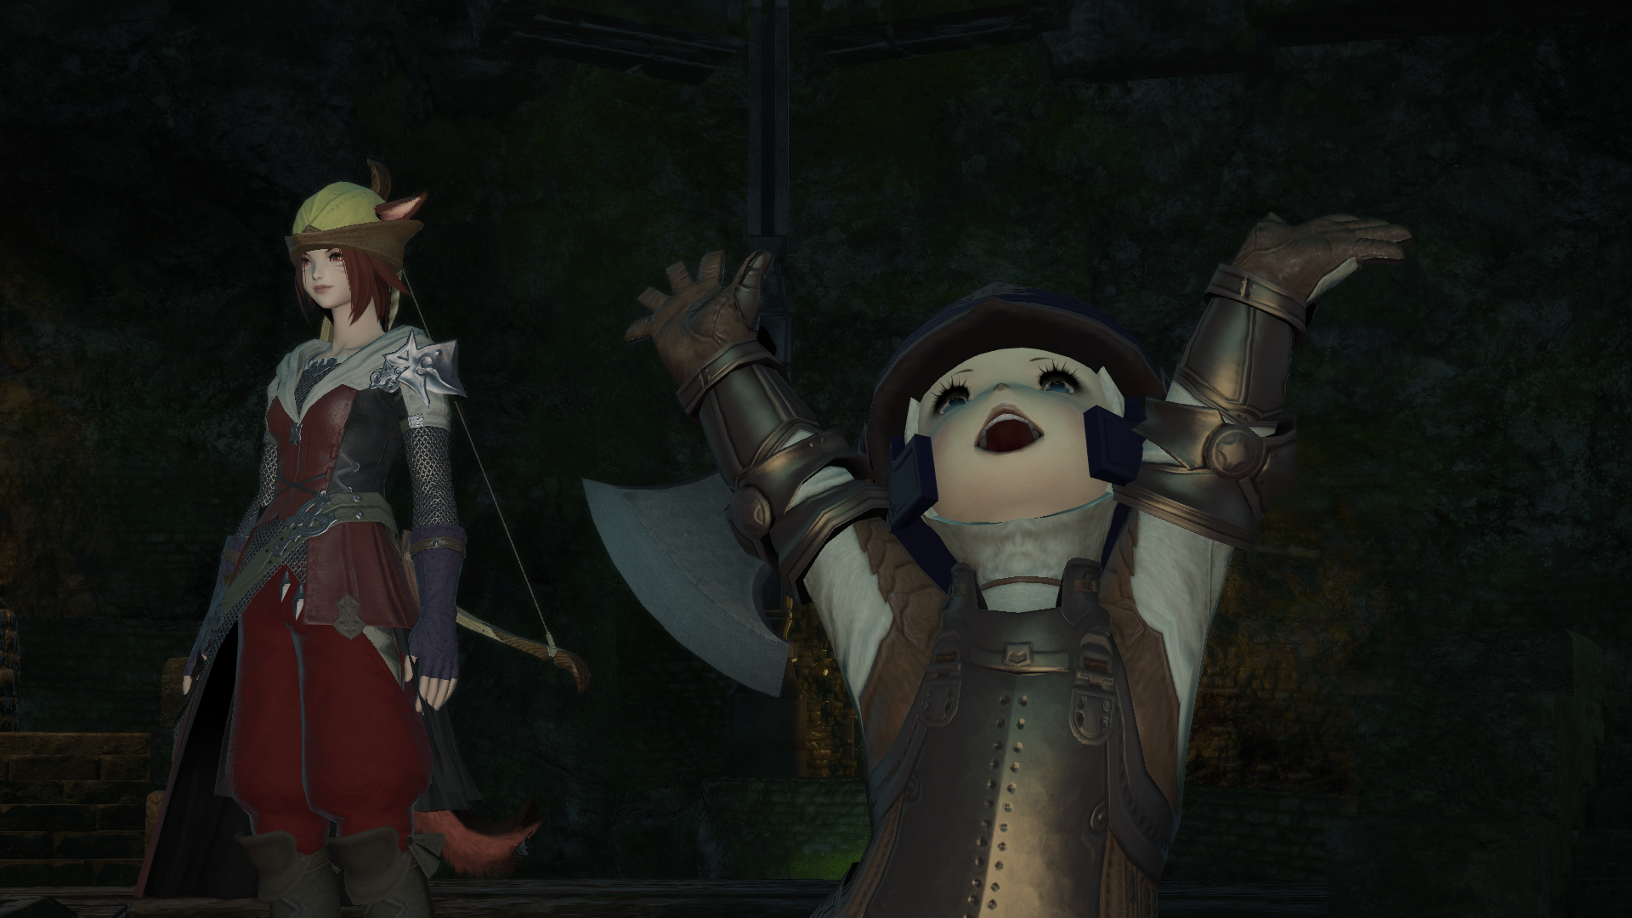 jigglyjam ffxiv know ears really this used shitpost with just like deal forum over month entire grind inb4 lala thread picture cute lalafell coming that fate posting soon